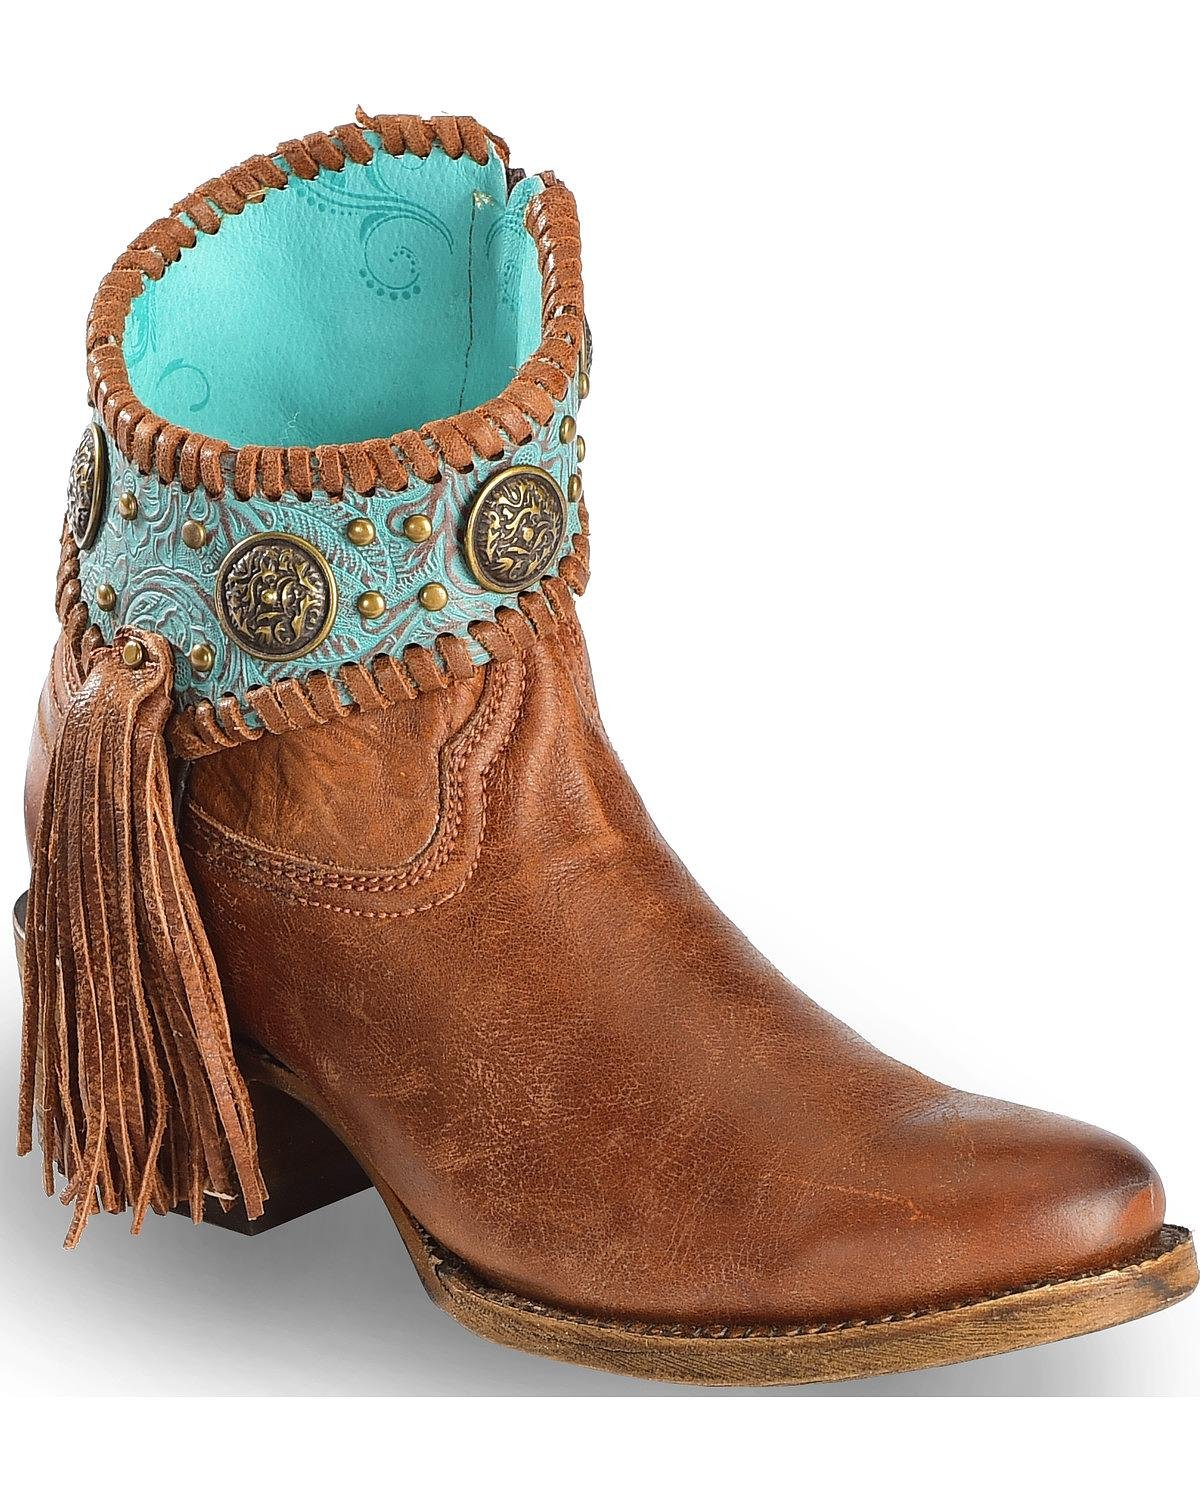 CORRAL Women's Turquoise Fringe Ankle Boot Round Toe - A3196 B01JF1HBP6 9 B(M) US|Cognac